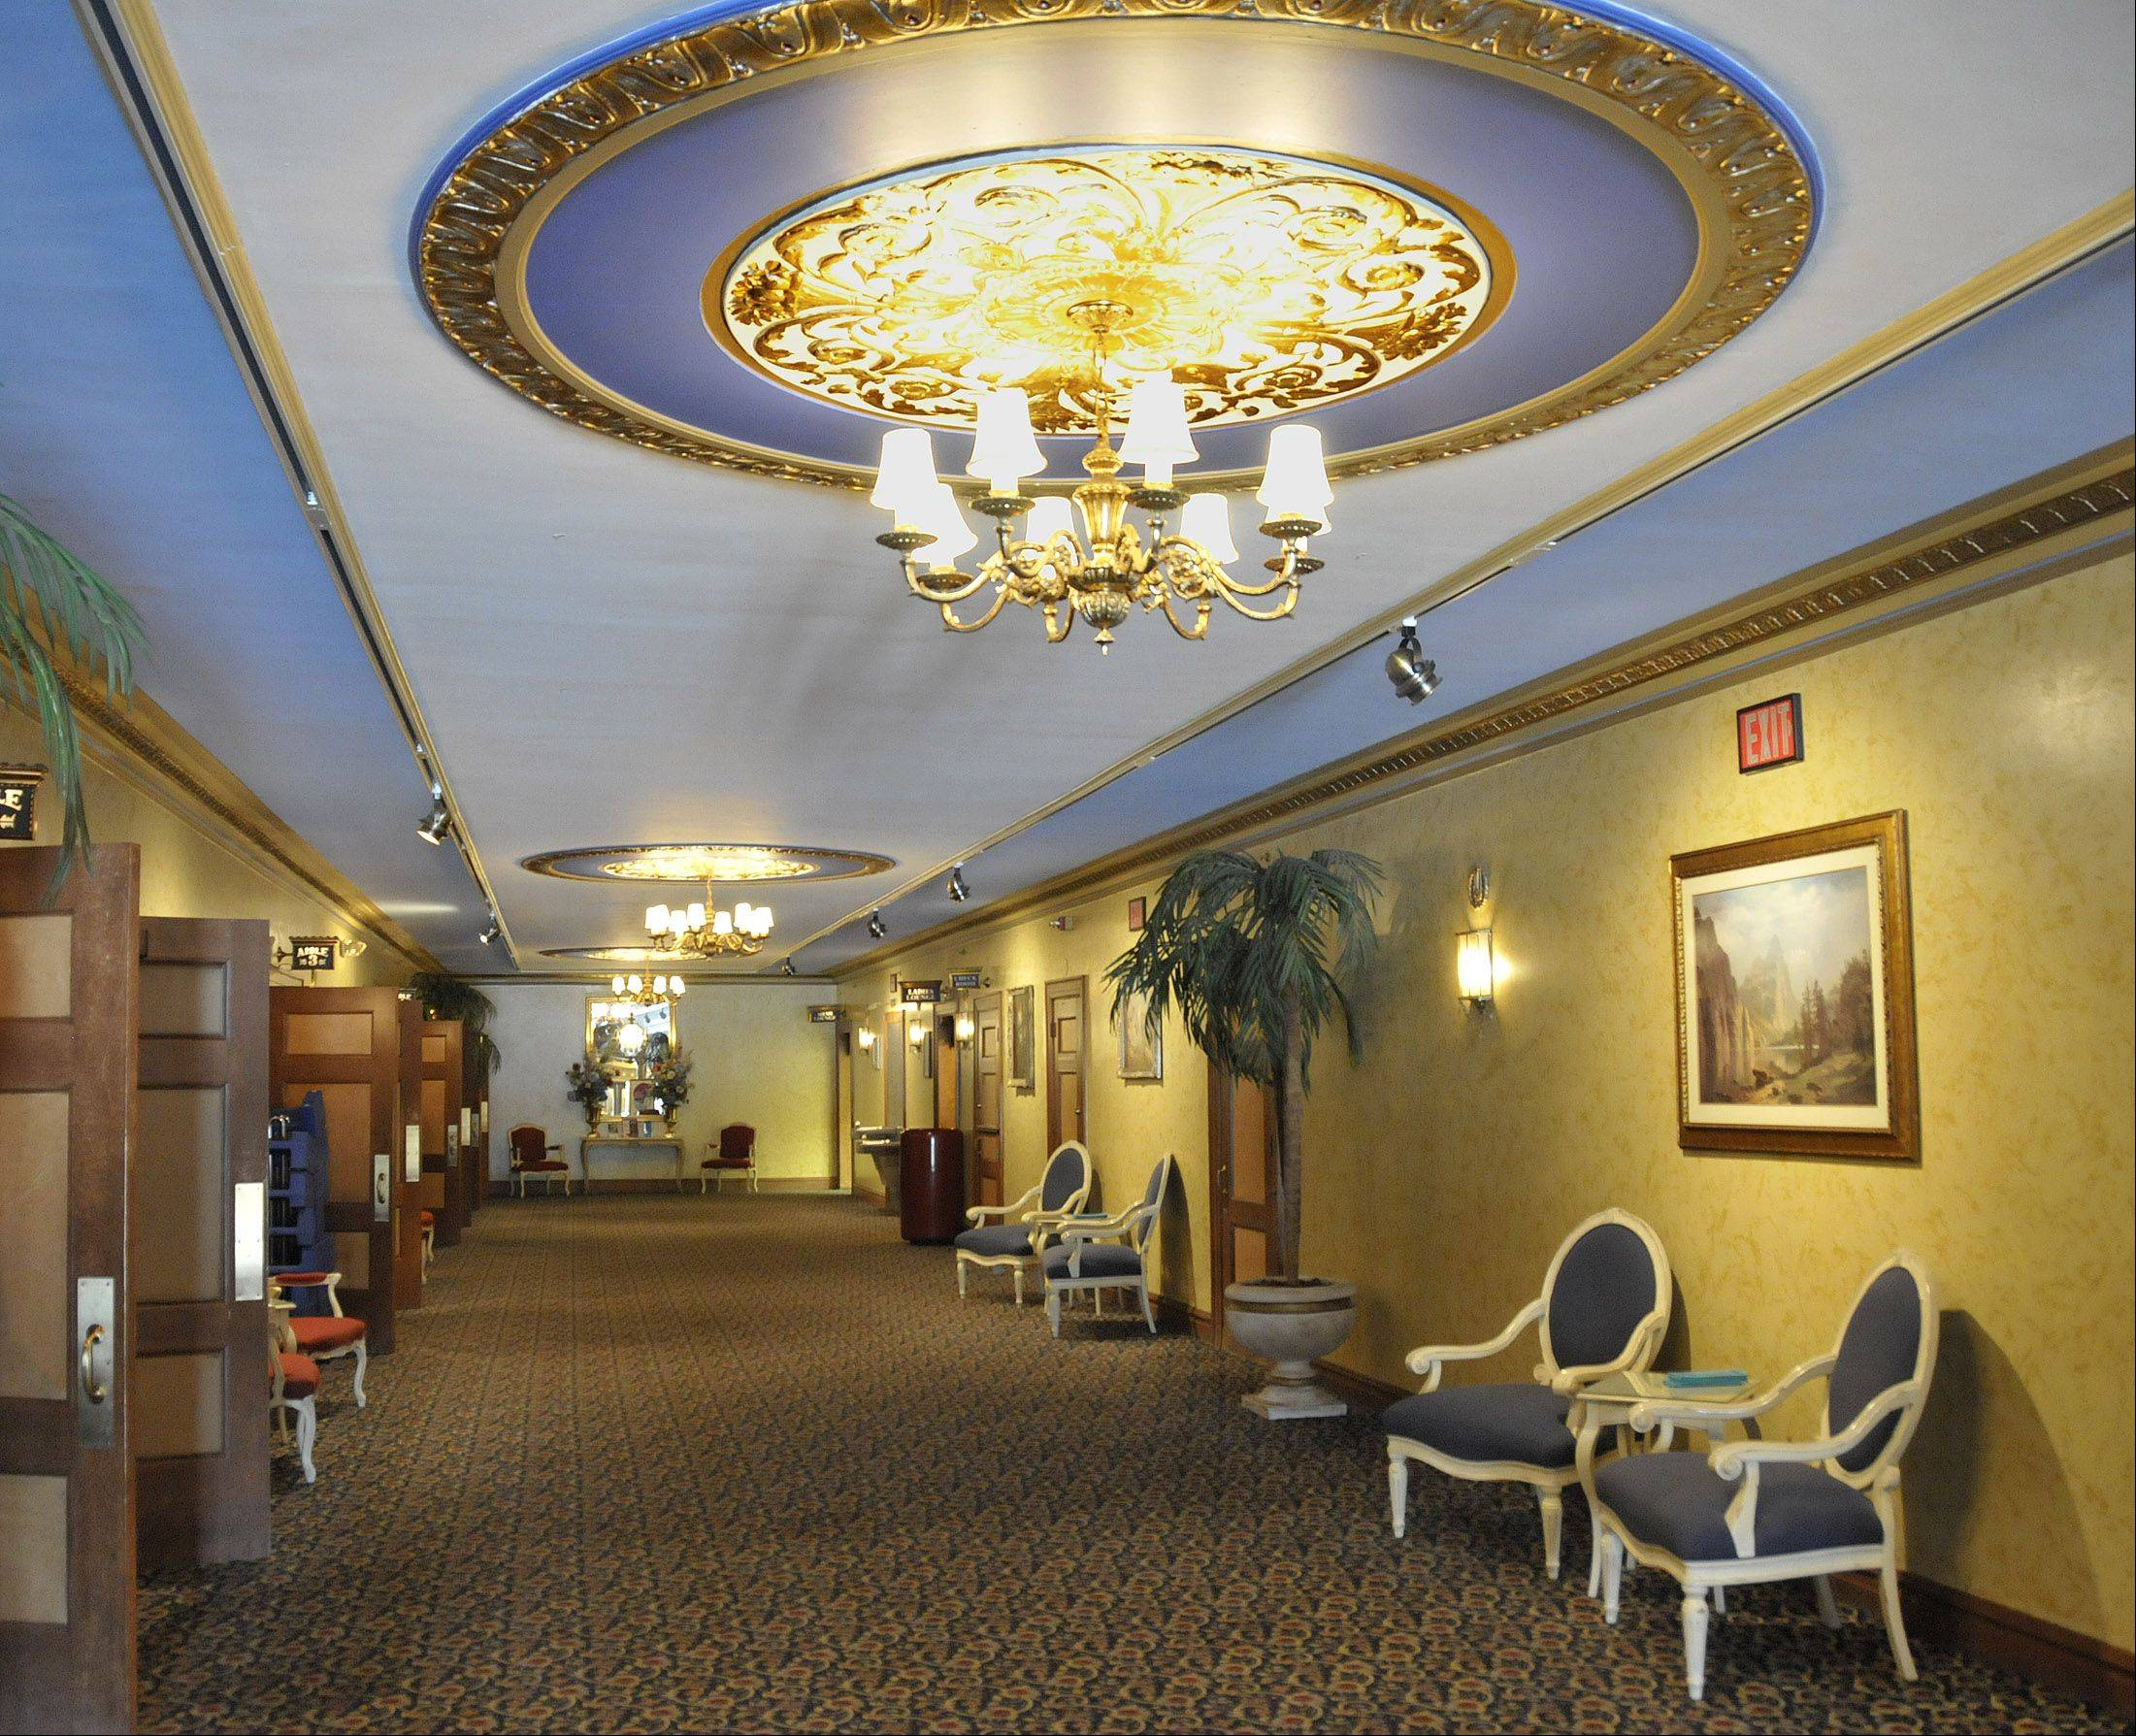 In the foyer, The Tivoli Theater in Downers Grove looks like an old-fashioned movie palace from the golden age of cinema, which it is. Behind the scenes, it is strictly state-of-the-art after finishing a conversion to digital movie projection.